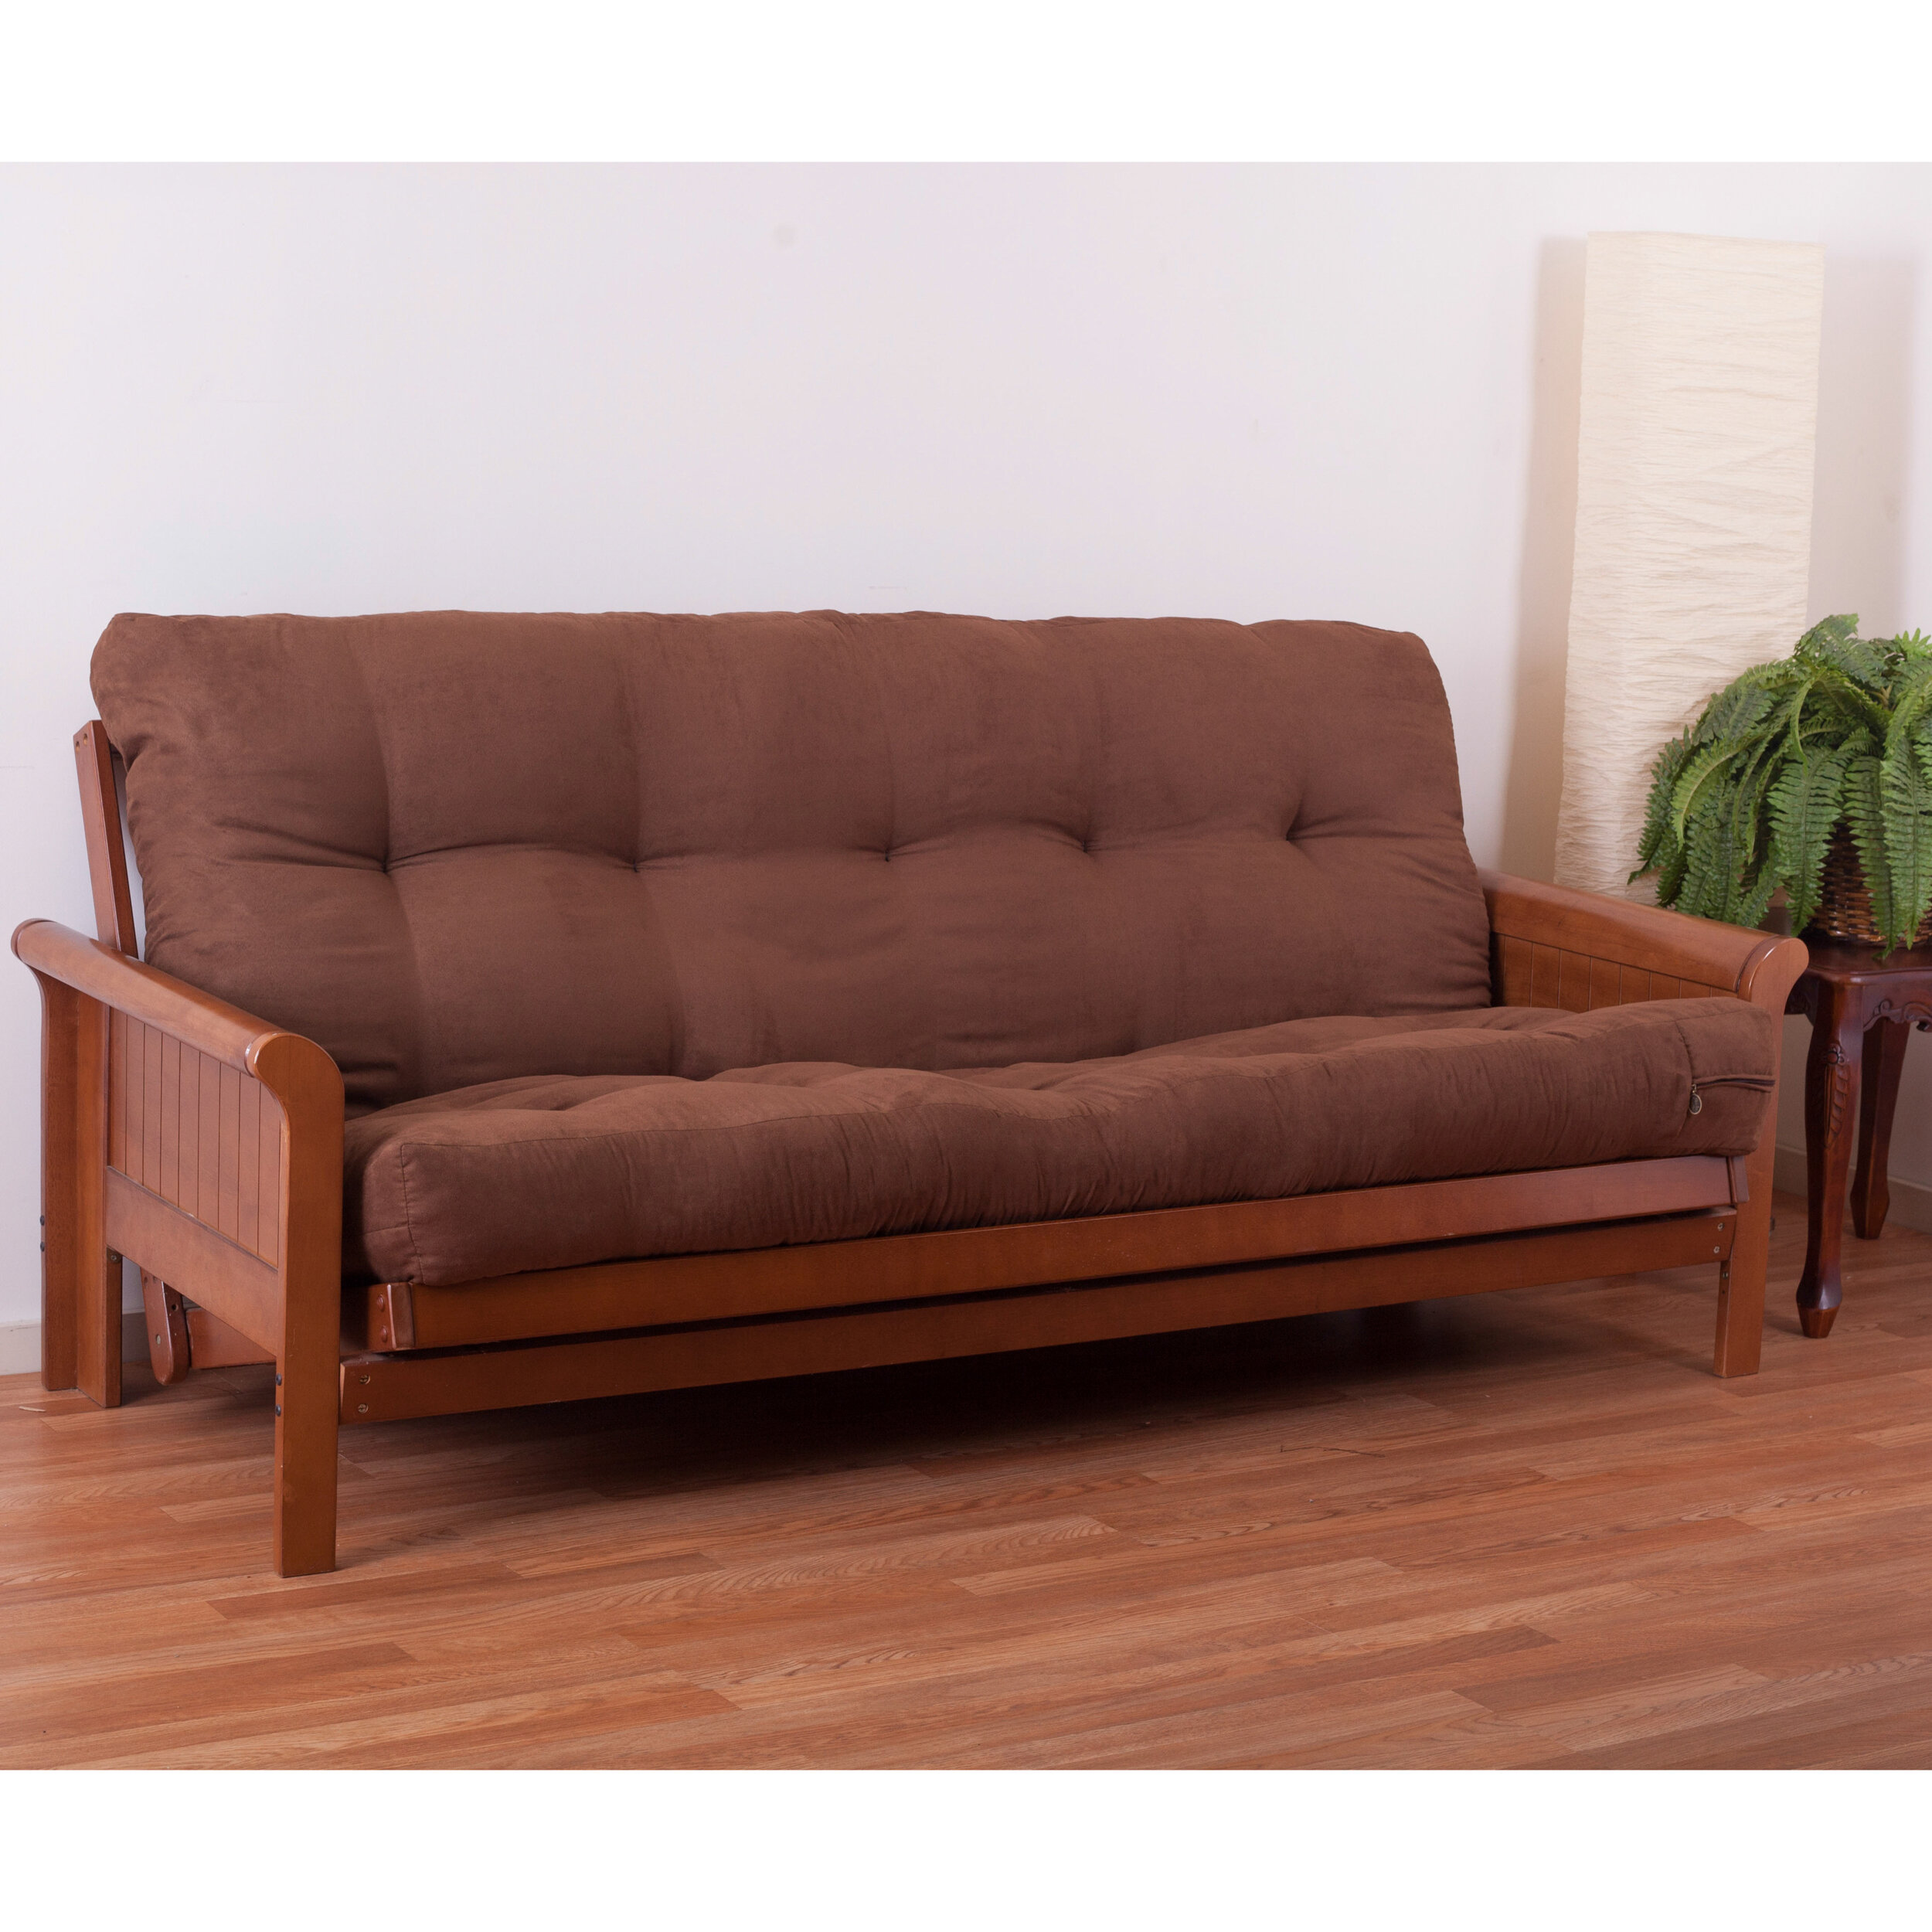 walmart chic futons bed very sofa futon cheap inside beds